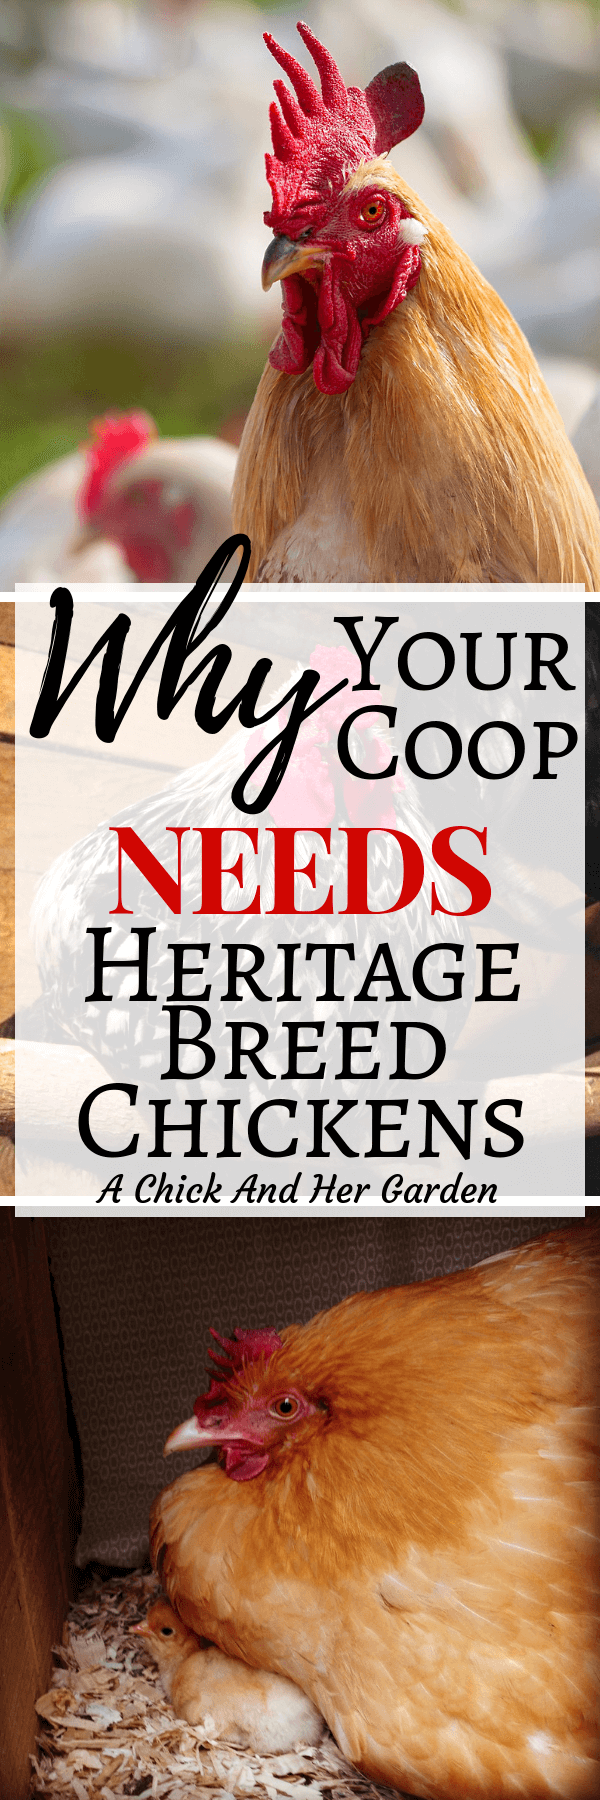 I never realized how import it is to raise heritage breed chickens! I've already got Buff Orpingtons, but will definitely be adding more breeds! #savethechickens #raisingchickens #backyardchickens #sustainablechickens #homesteading #achickandhergarden